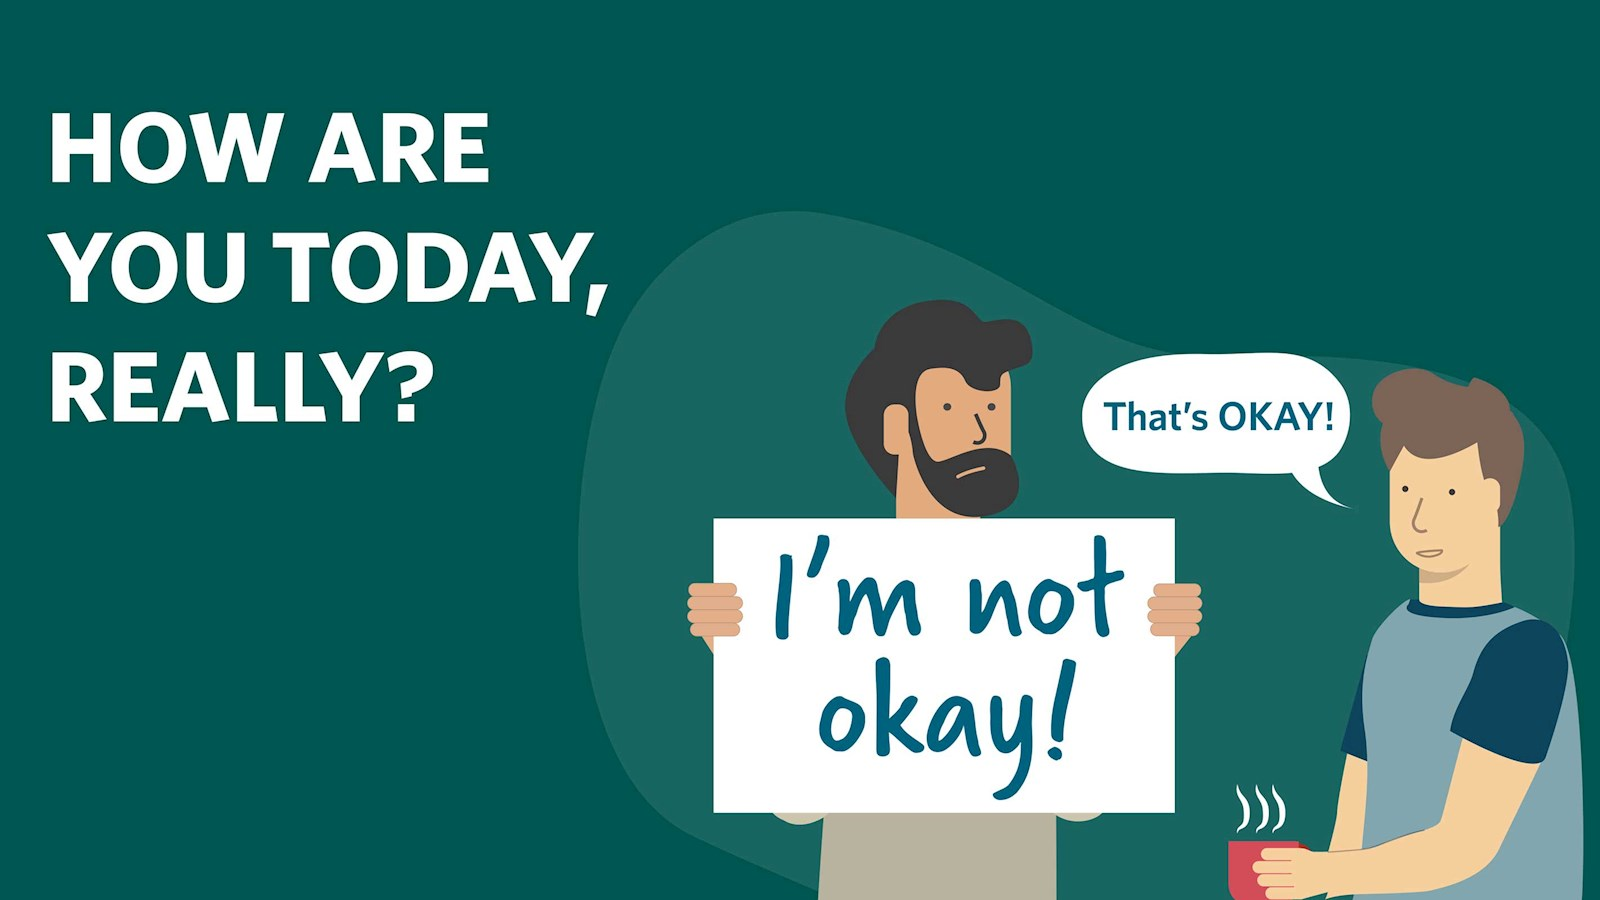 Image stating it's okay not to be okay